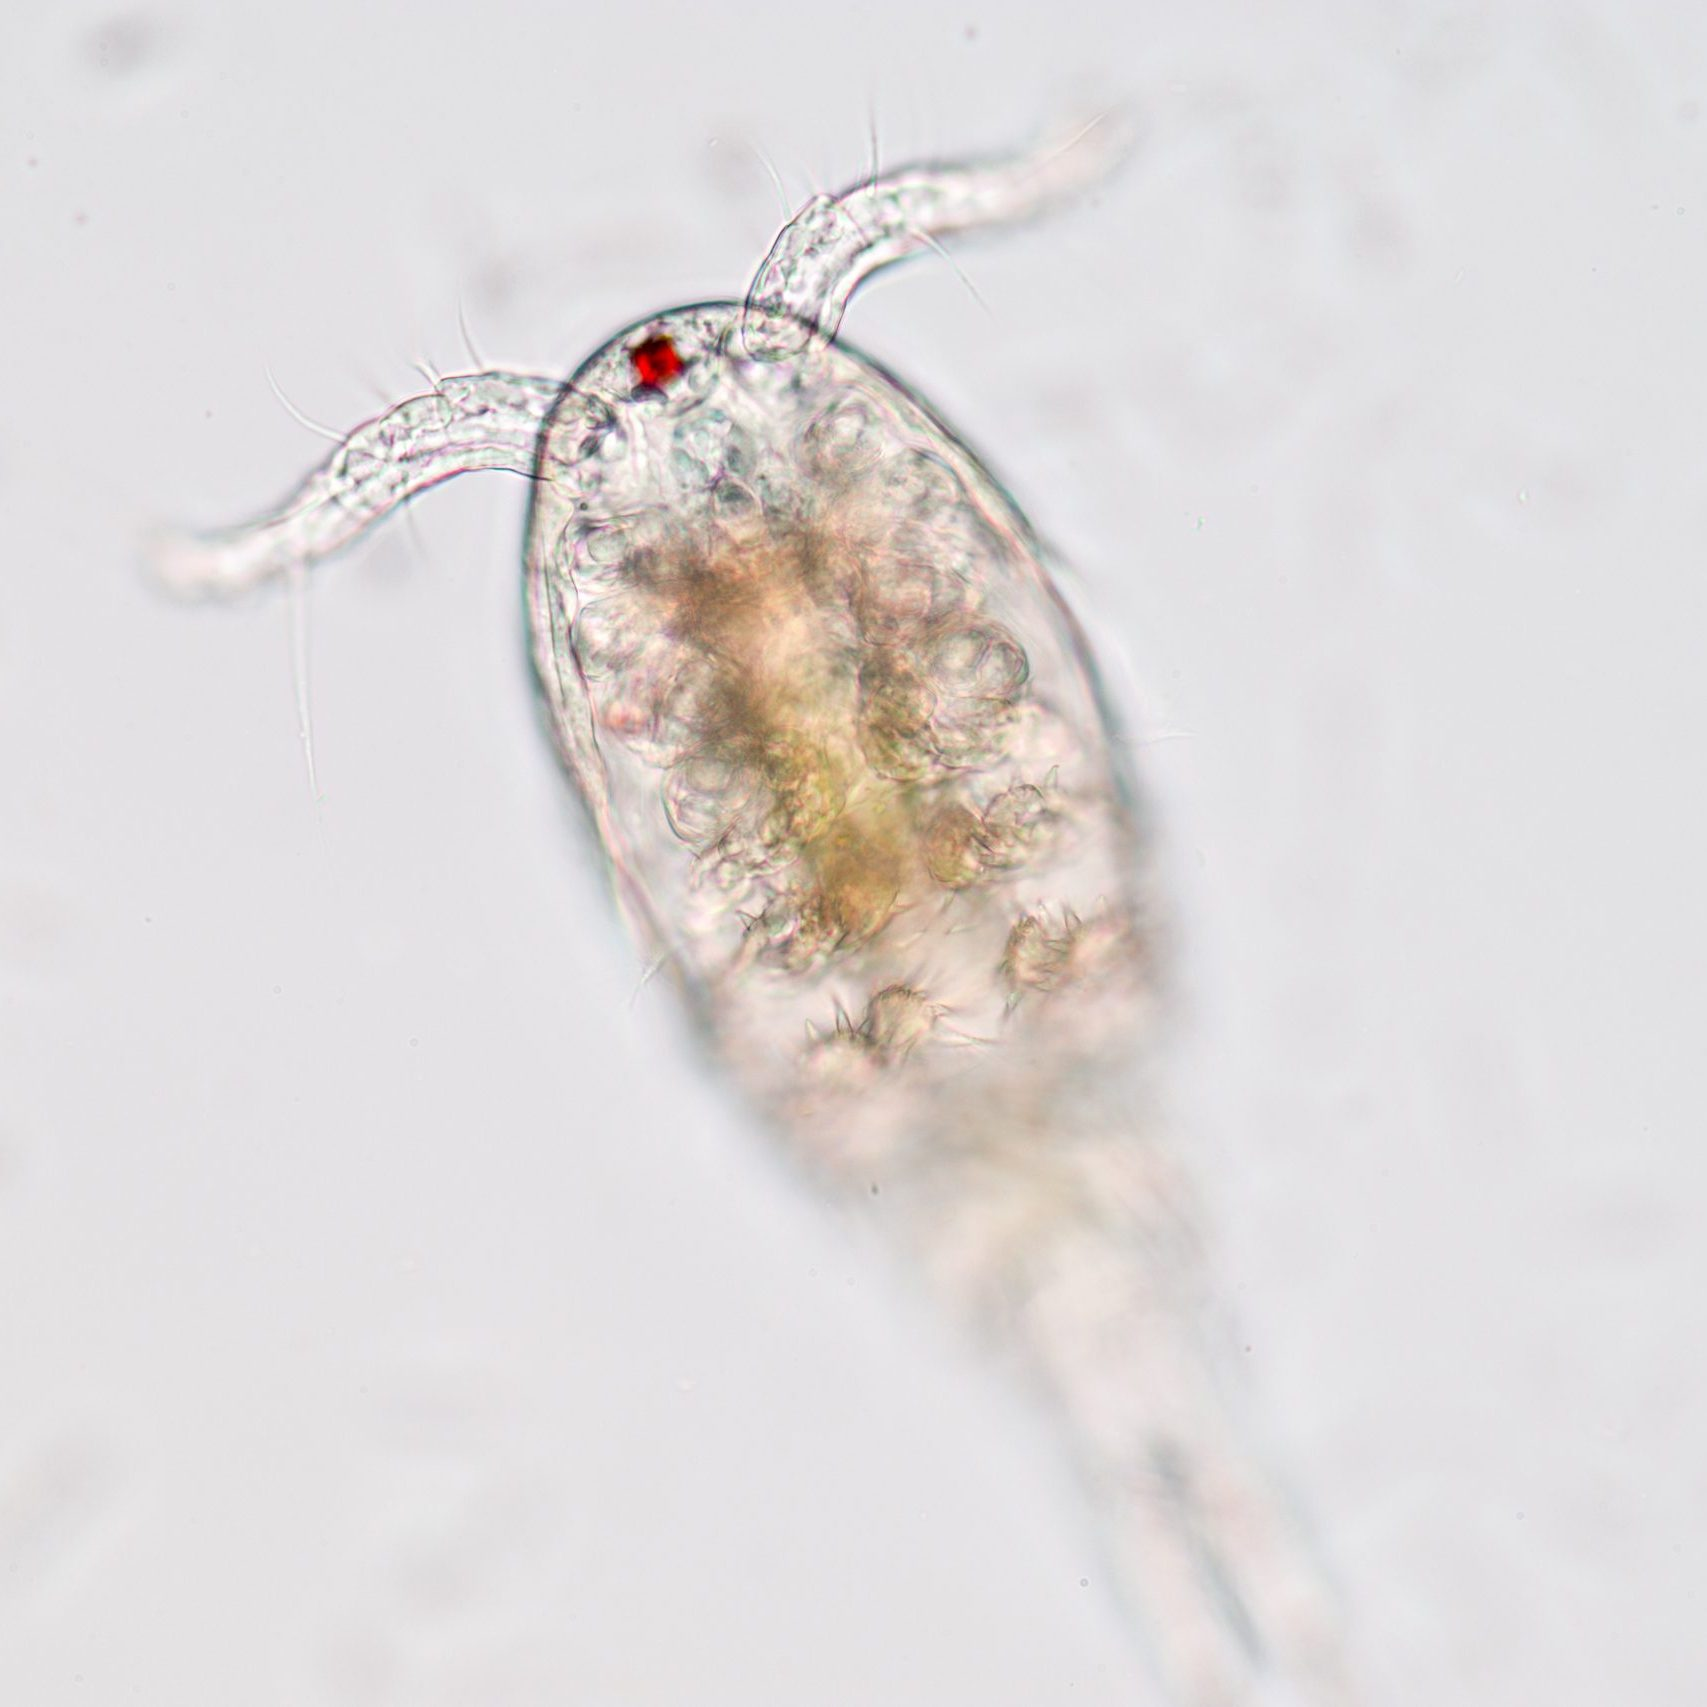 Copepod (zooplankton) in freshwater and Marine under microscope.